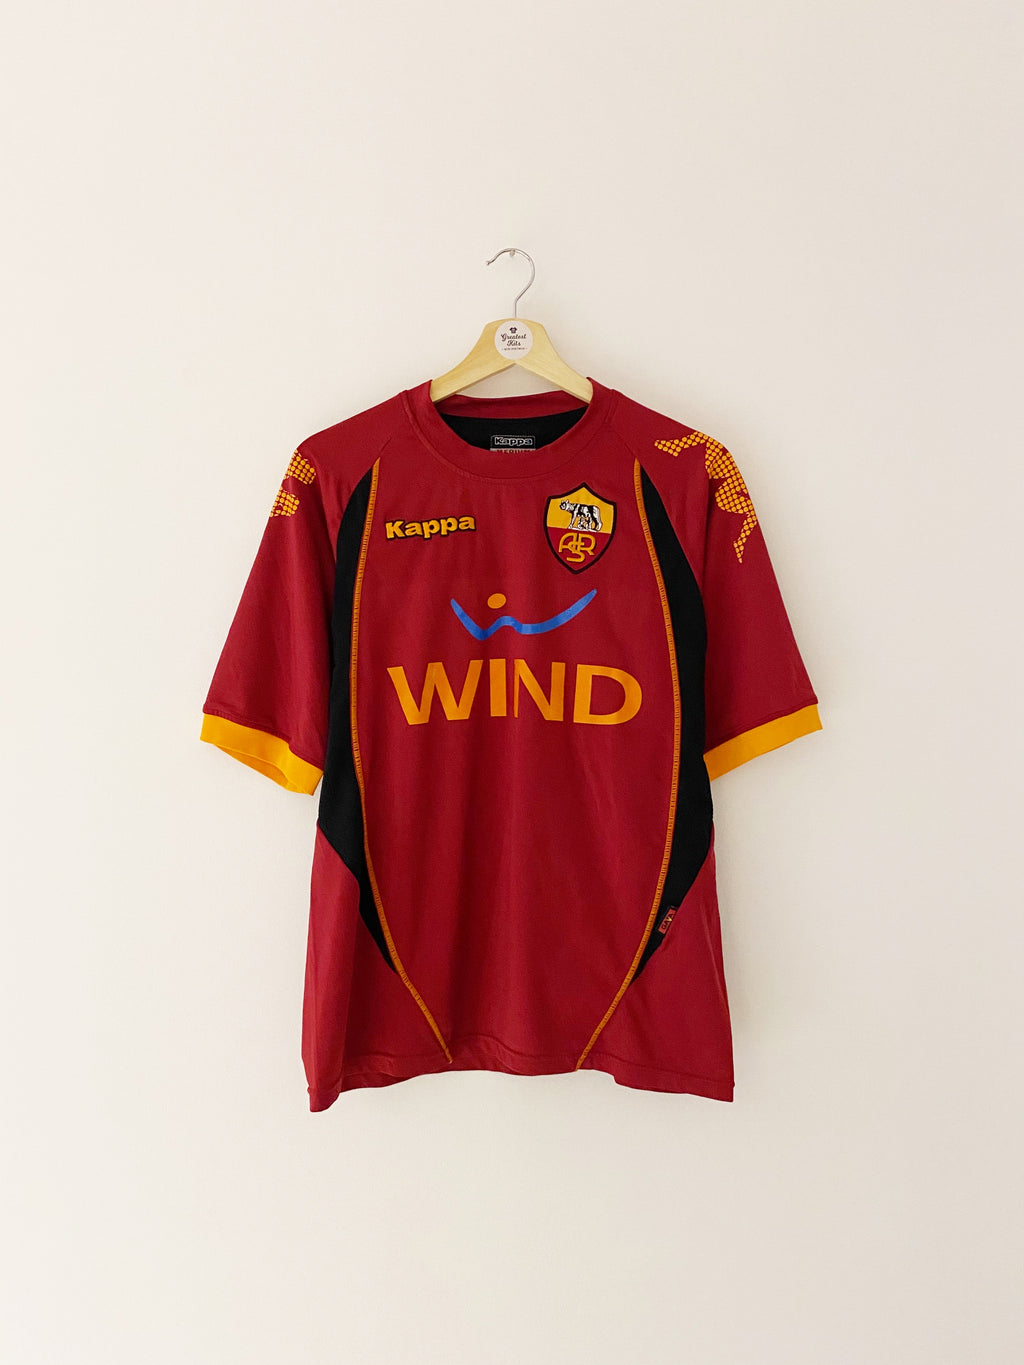 2008/09 Roma Training Shirt (M) 7.5/10